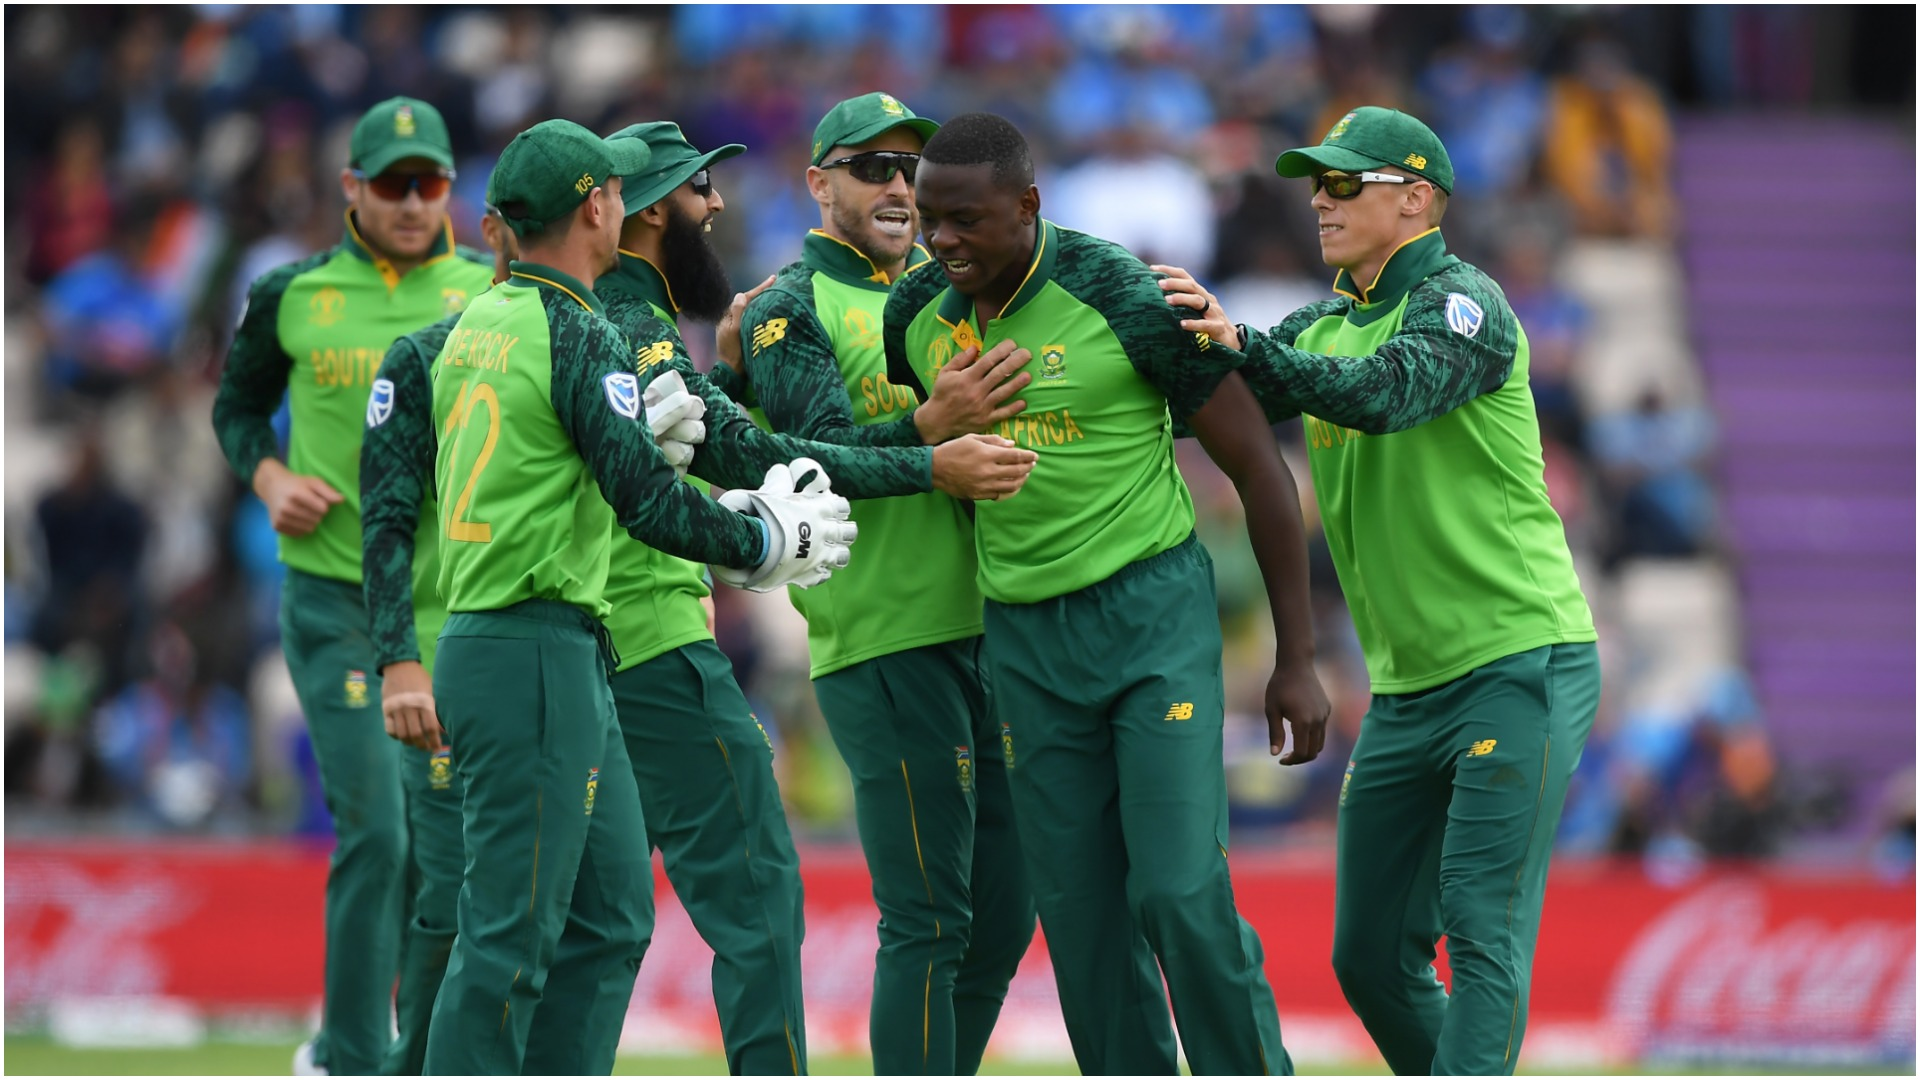 'Champion' Rabada was extremely unlucky - Du Plessis